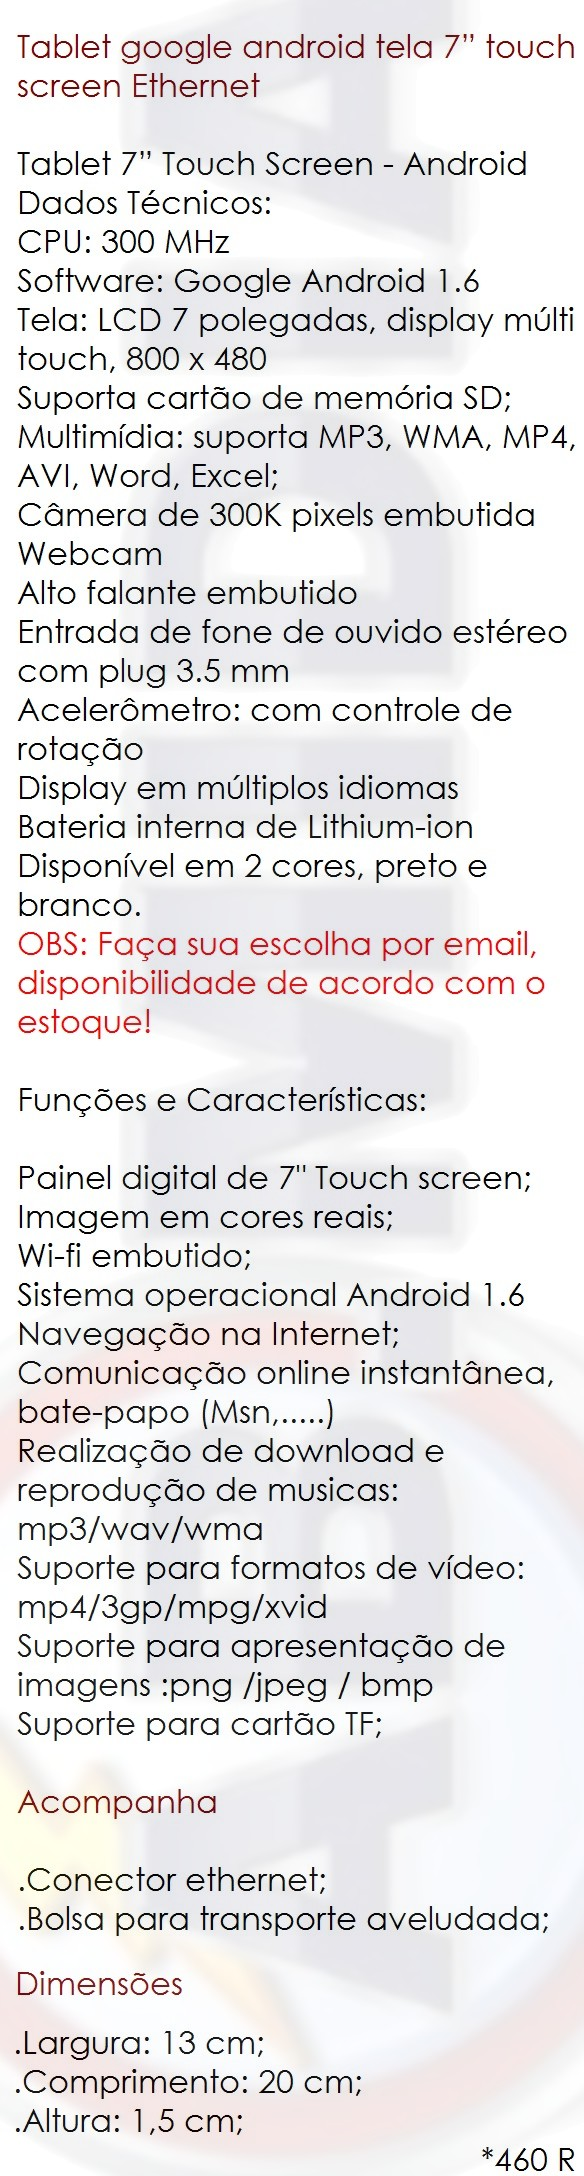 http://abmidia.dominiotemporario.com/fotos%20e%20an%C3%BAncios%202011/tablet%207%20polegadas%20touch%20screen/descri%C3%A7%C3%A3o.jpg